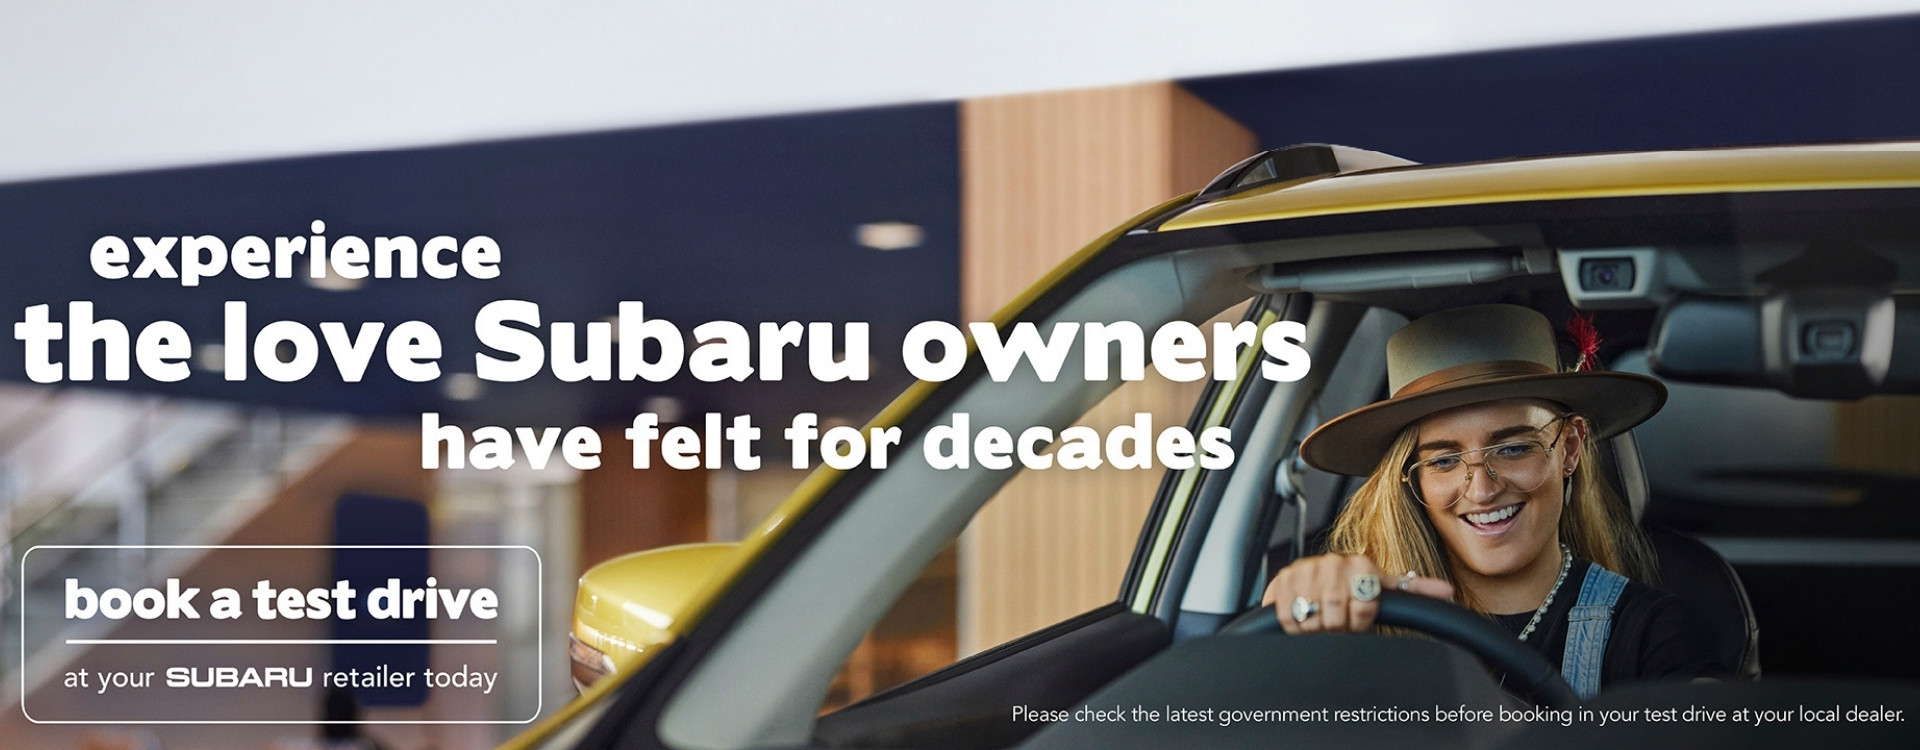 Experience the love Subaru owners have felt for decades. View our Offers.